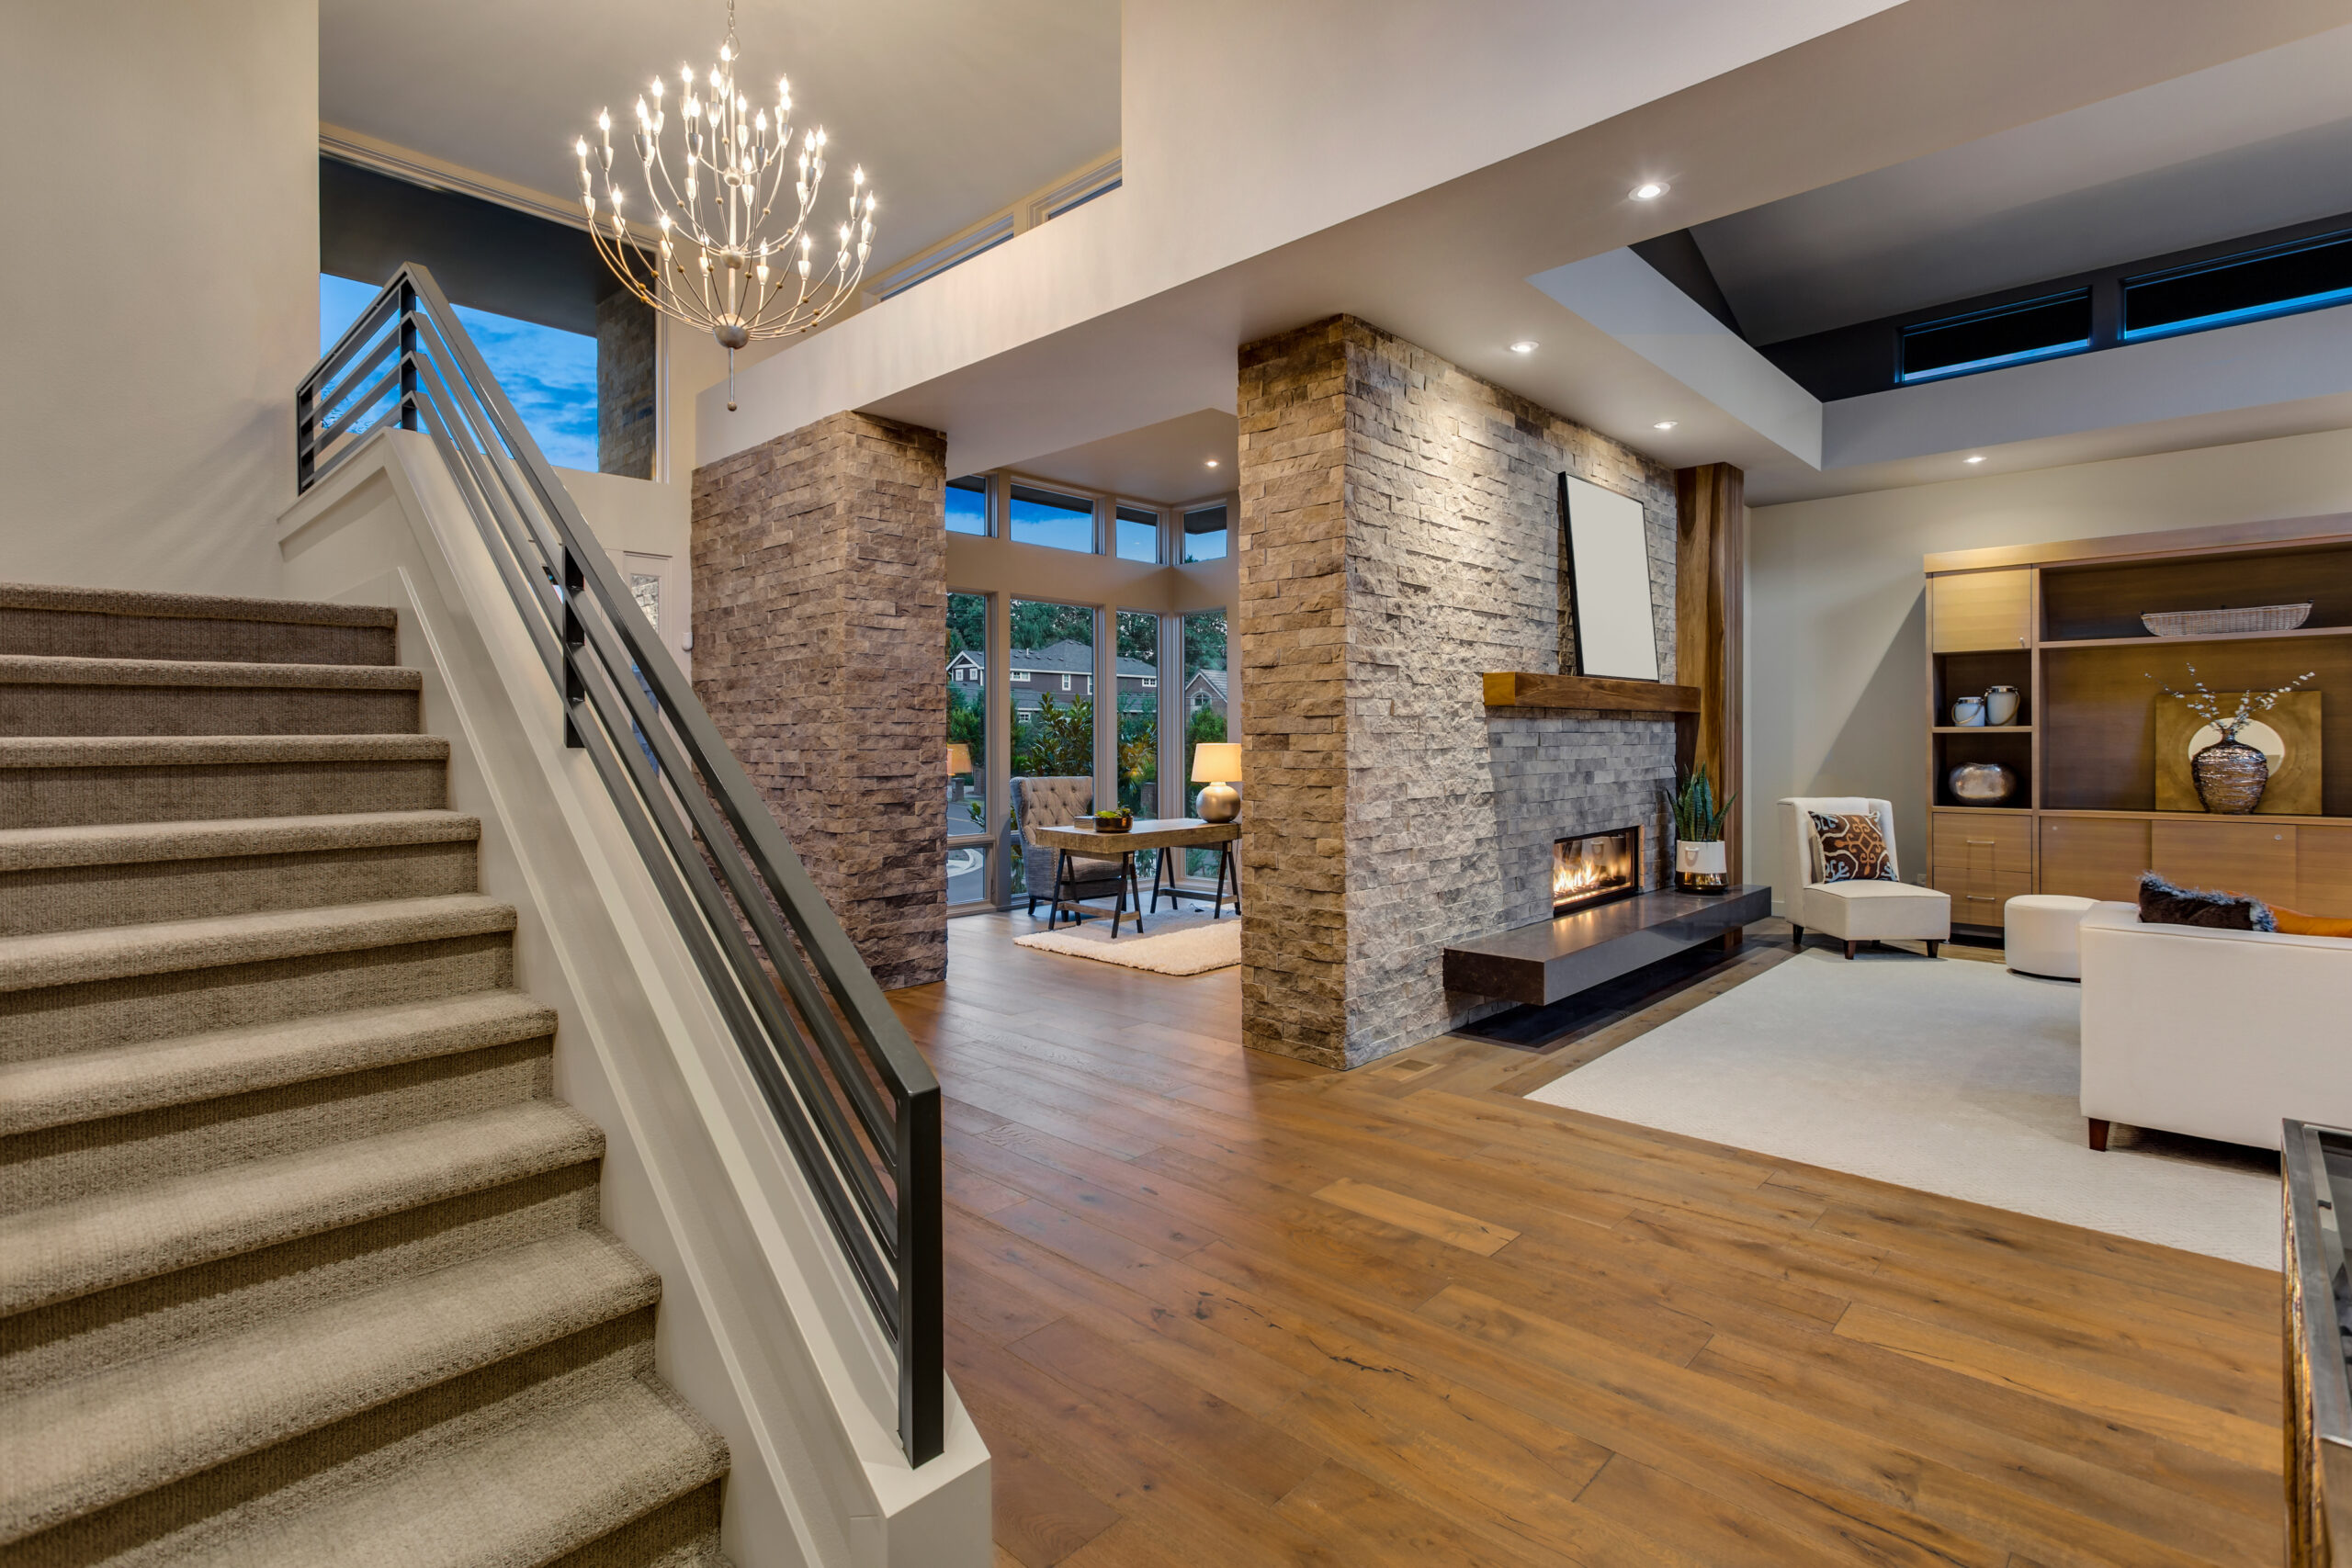 Spacious new luxury home interior in luxury home with large stone fireplace, roaring fire, view of den and staircase.